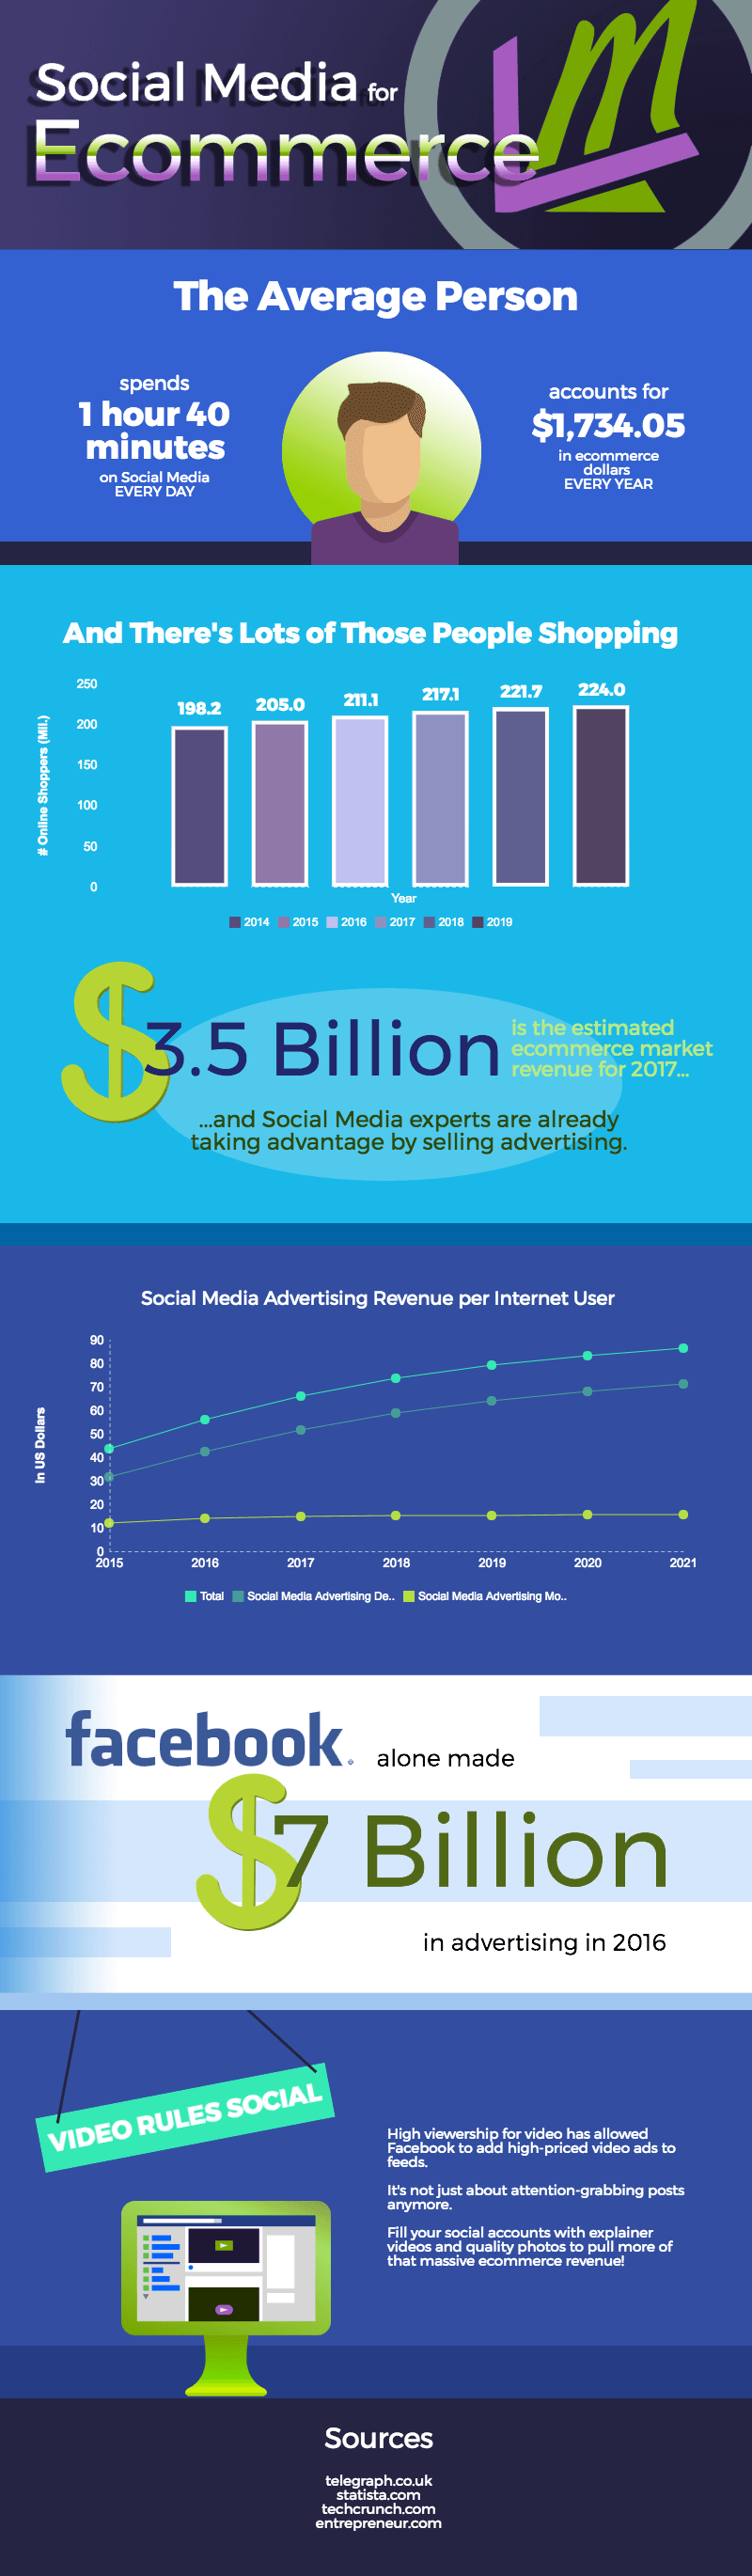 social media for ecommerce facts and statistics infographic